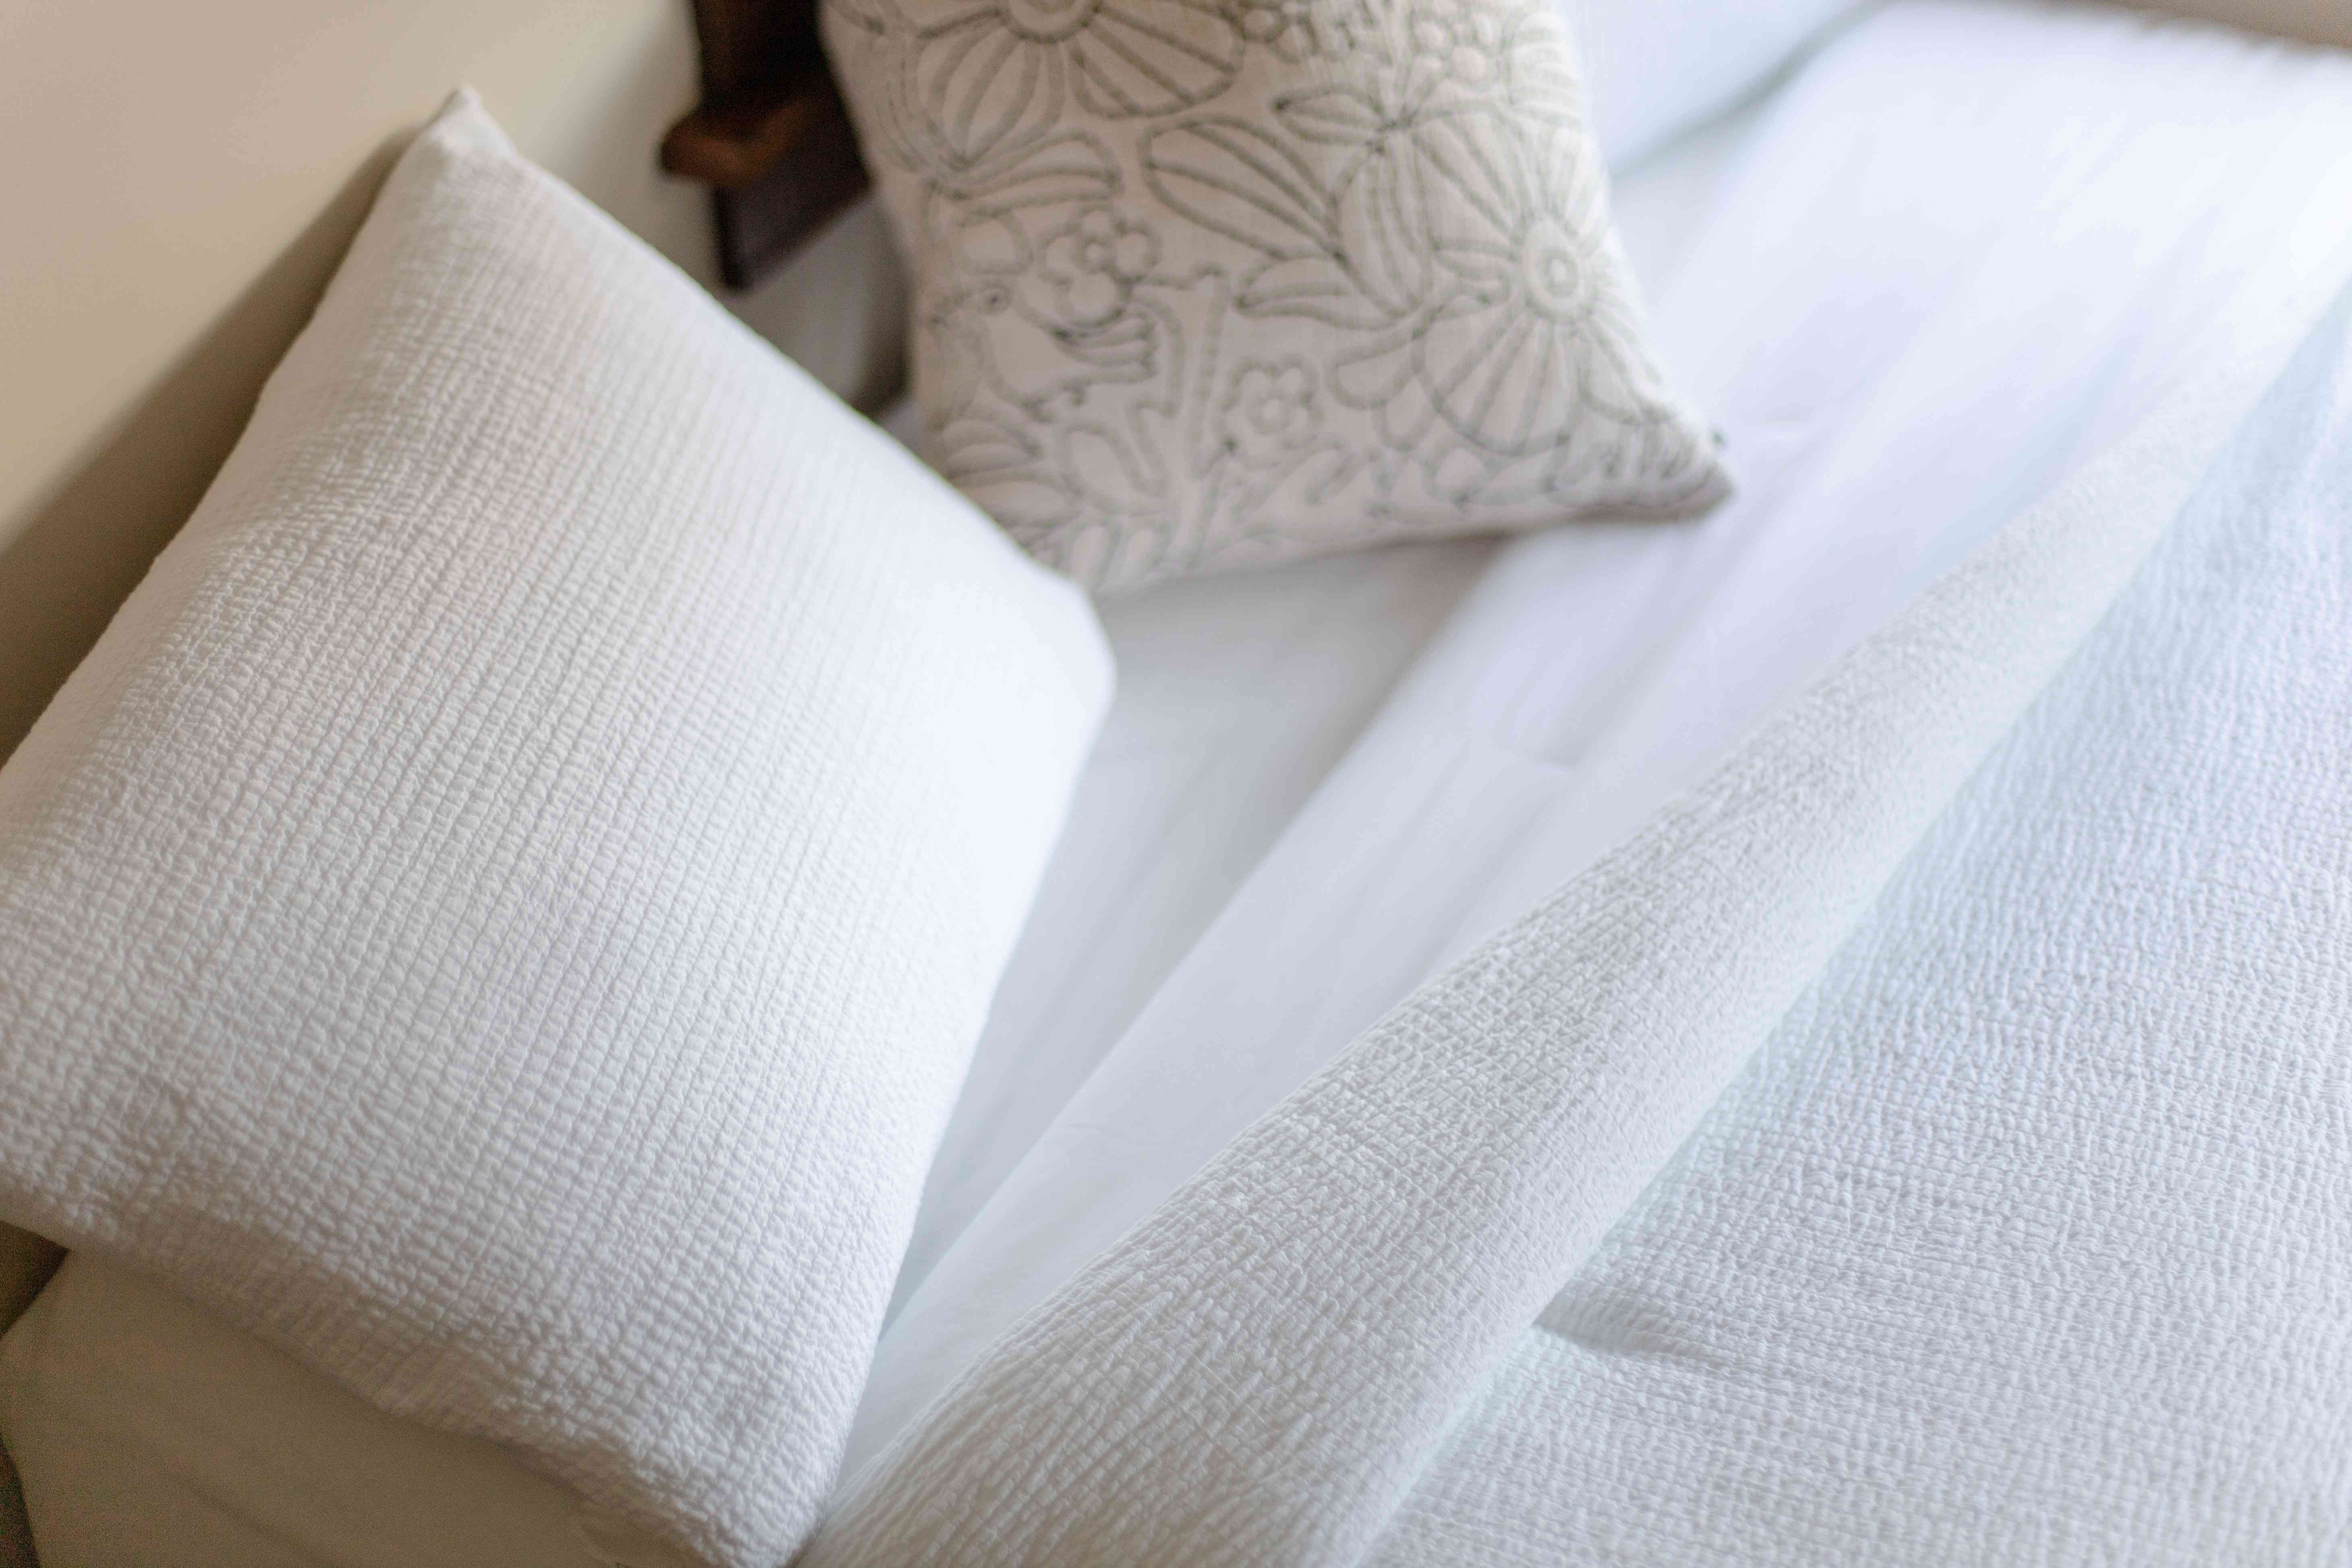 comforter with design and texture